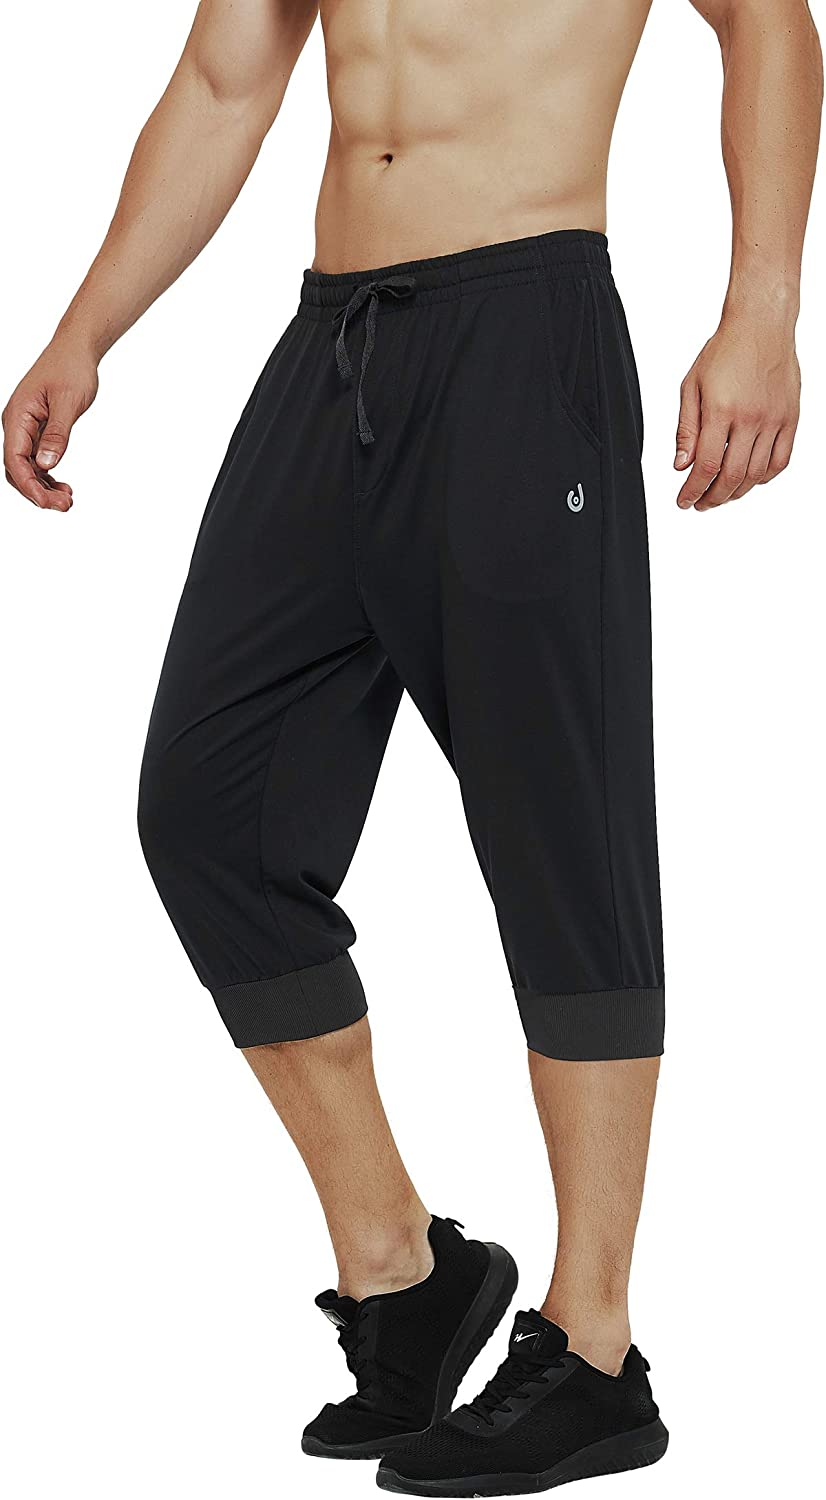 Men/'s Casual Sports Shorts Gym Training Running Trousers Workout Jogging Pants